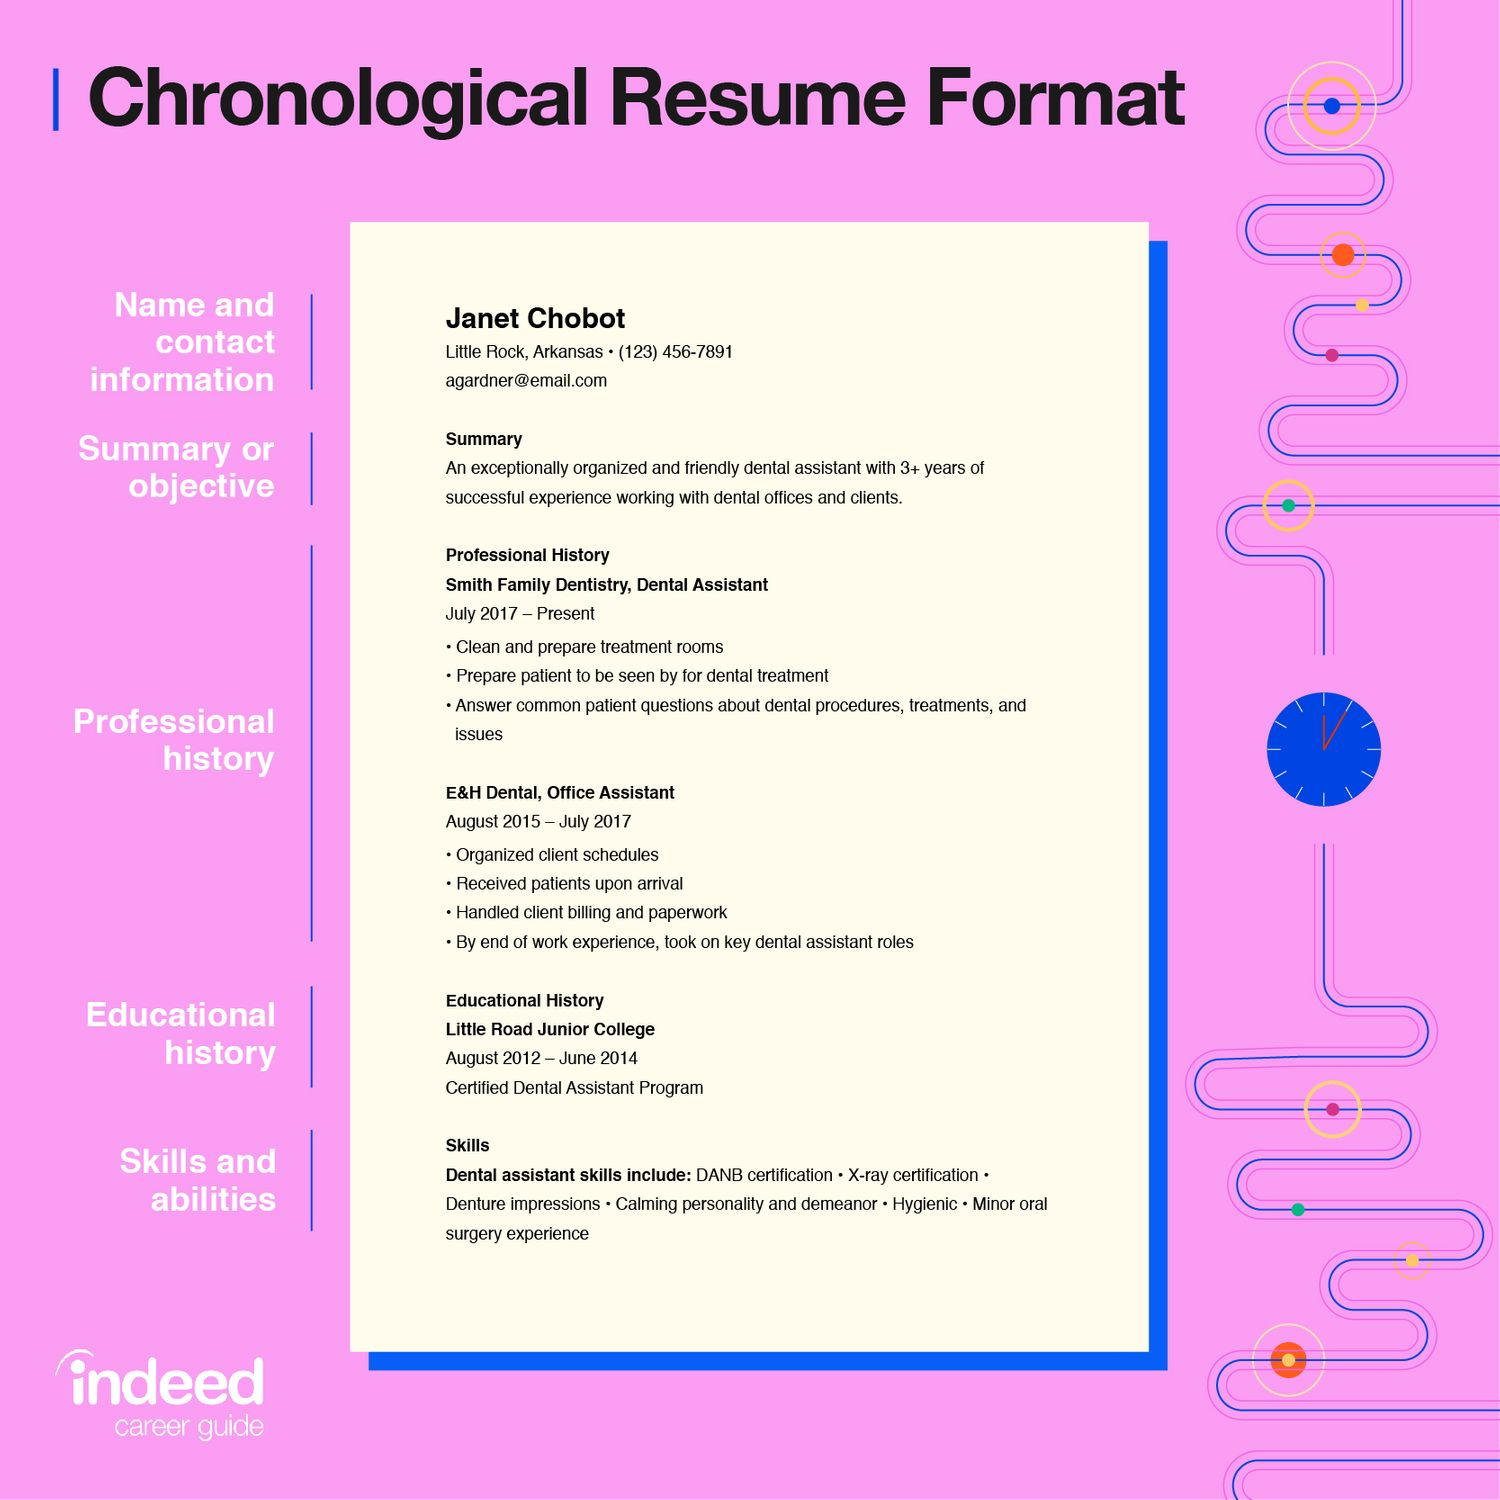 chronological resume tips and examples indeed functional vs resized apply web developer Resume Functional Resume Vs Chronological Resume